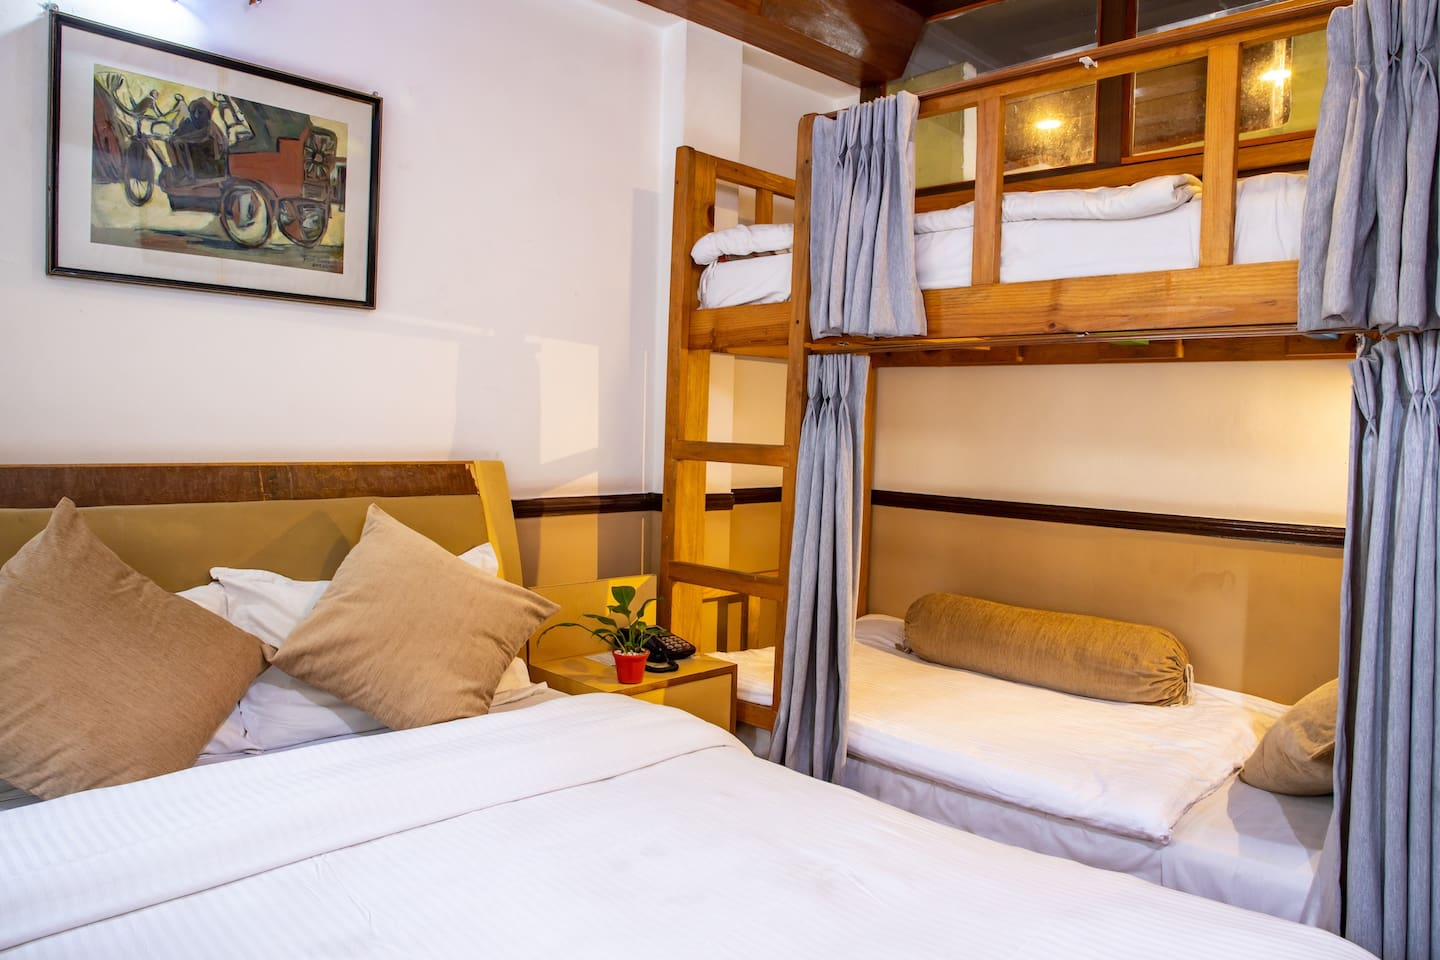 Comfortable to fit up to 4 person however more spacious upto three persons as well.